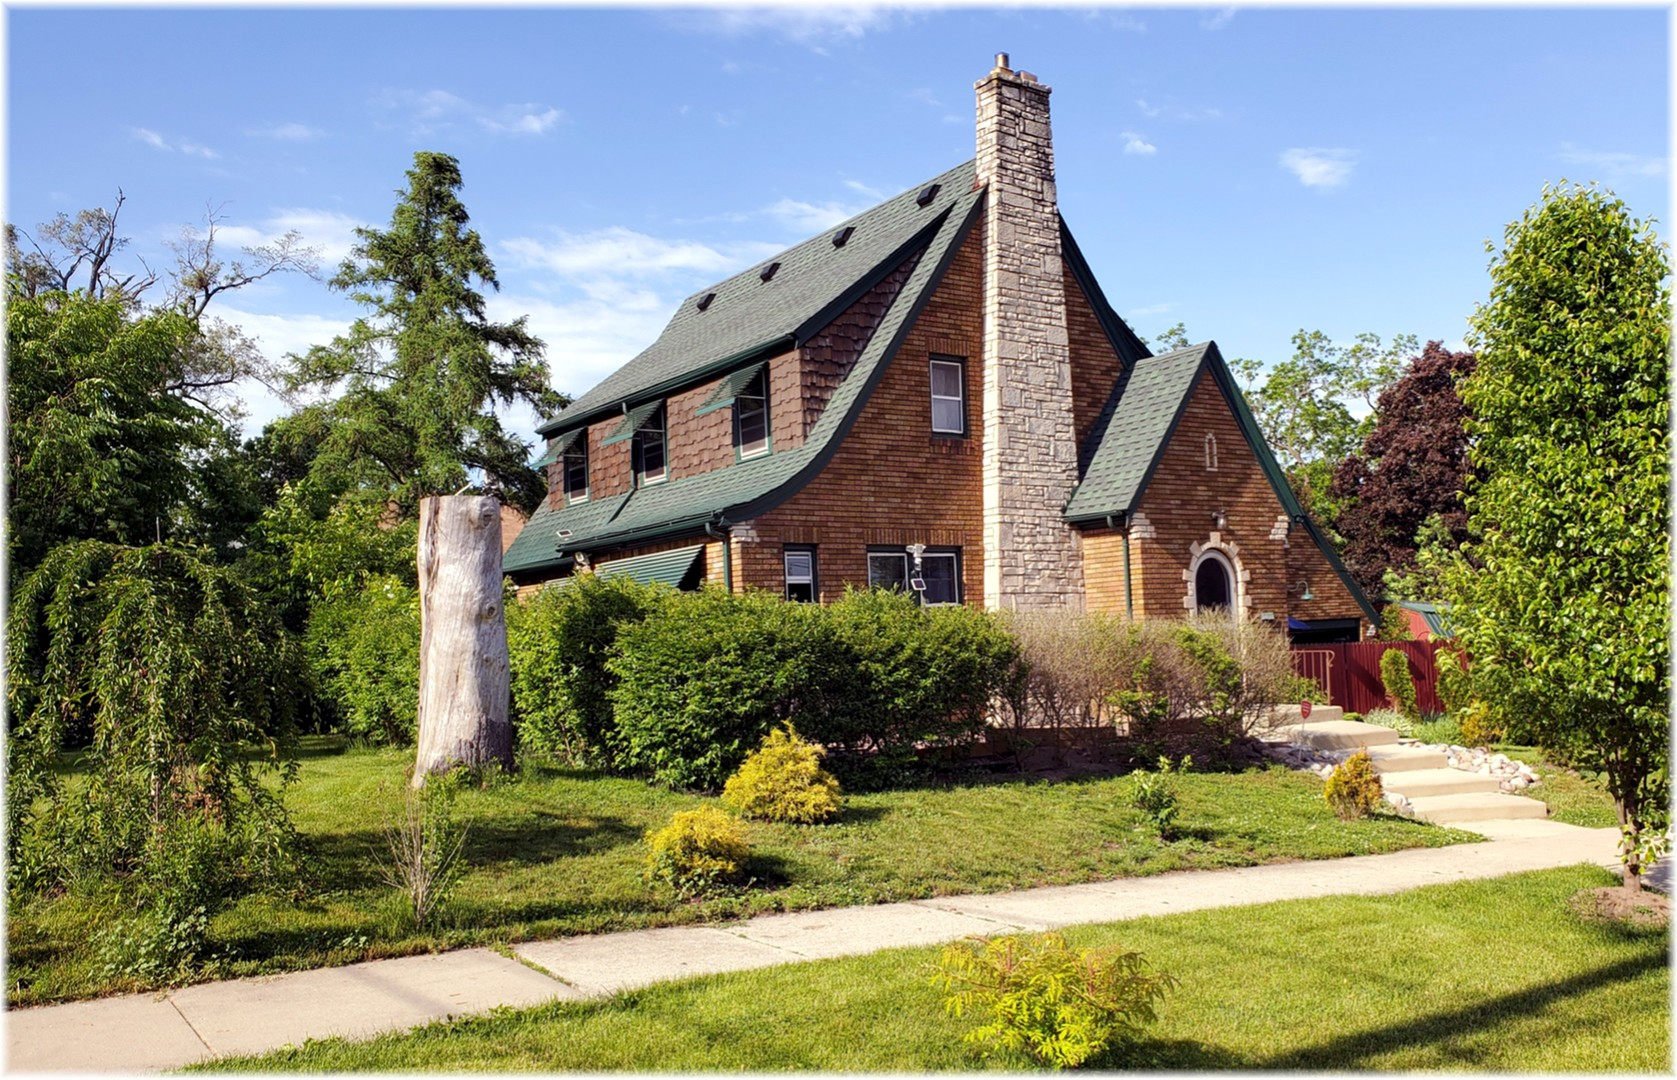 Photo for 68 Lord Street, Elgin, IL 60123 (MLS # 10732396)